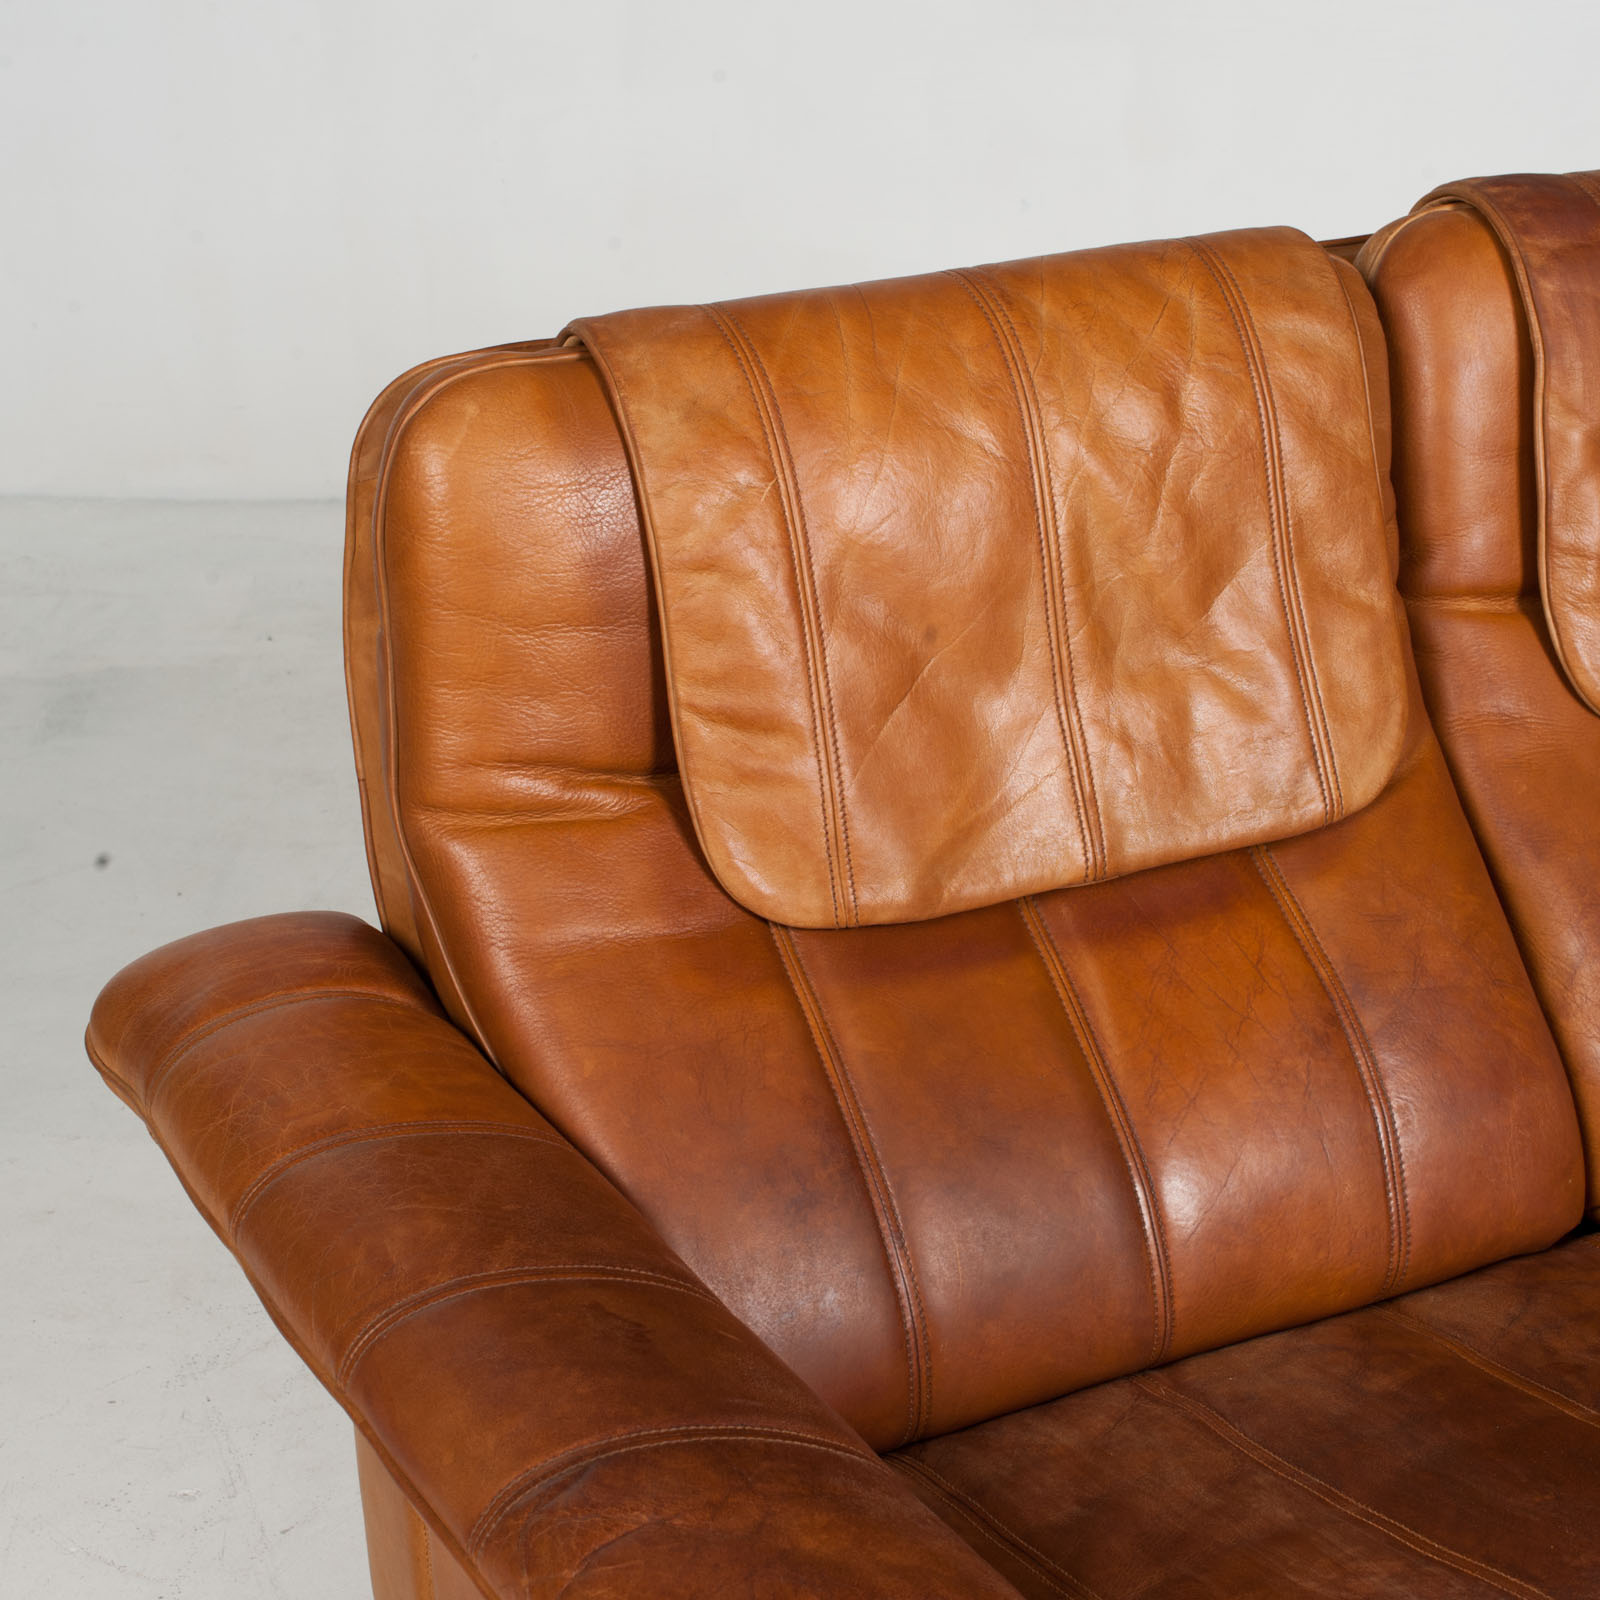 2 Seat Sofa By De Sede In Tan Leather 1970s Switzerland 03